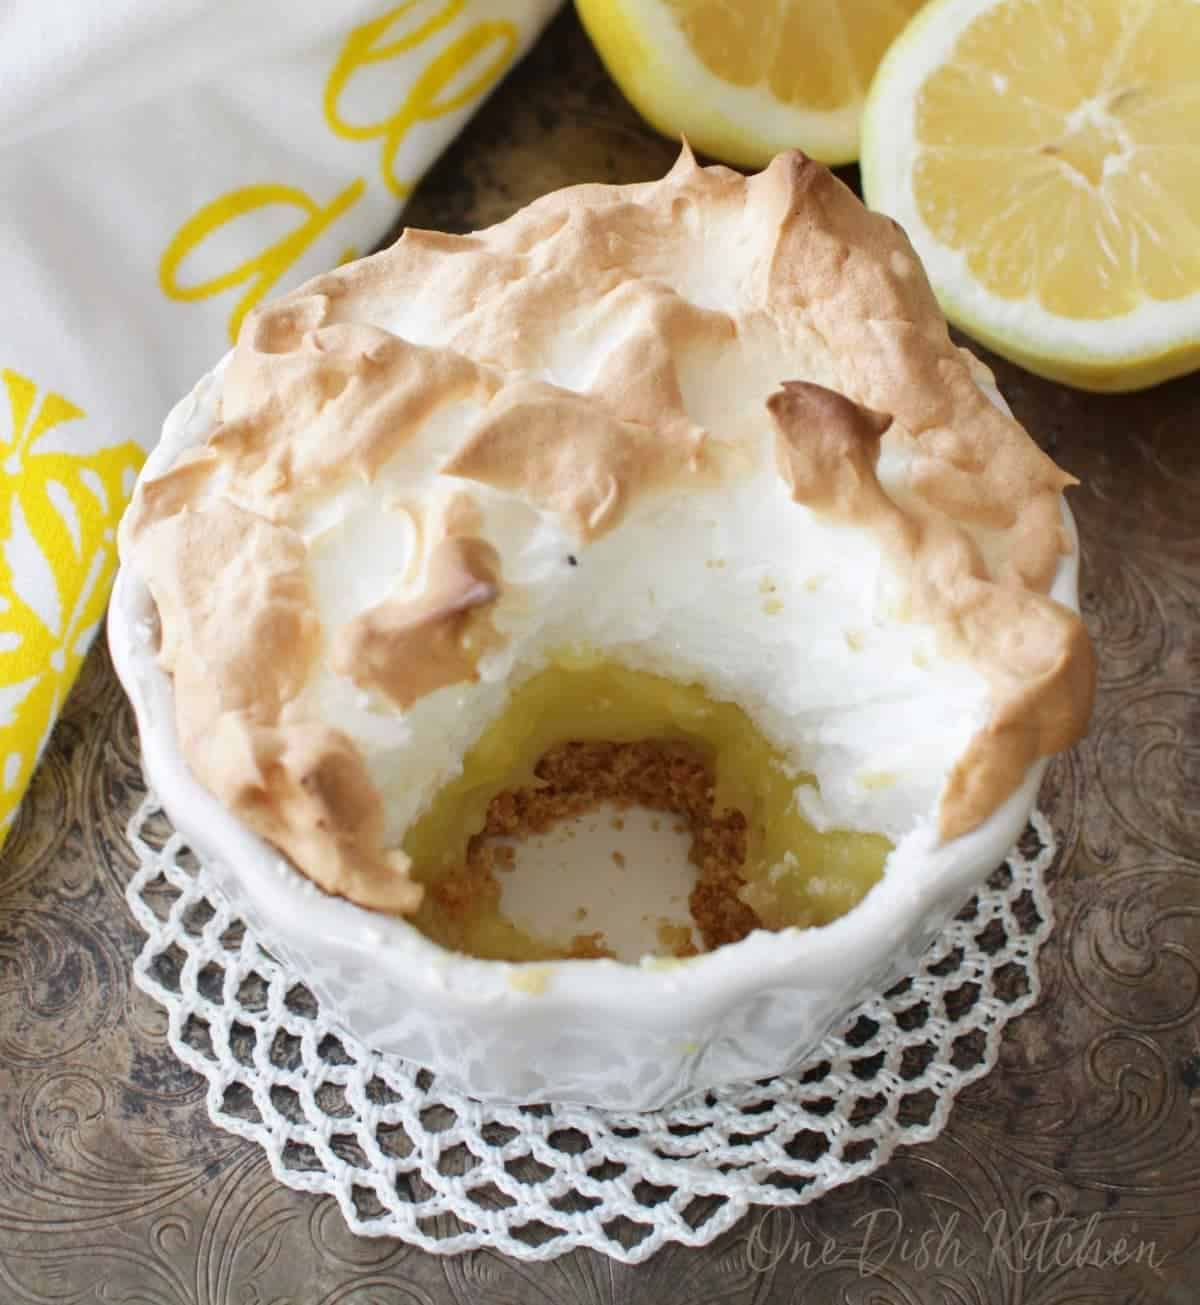 A small lemon meringue pie with a spoonful missing, showing the crust, filling and meringue in layers on a metal tray with two lemon halves